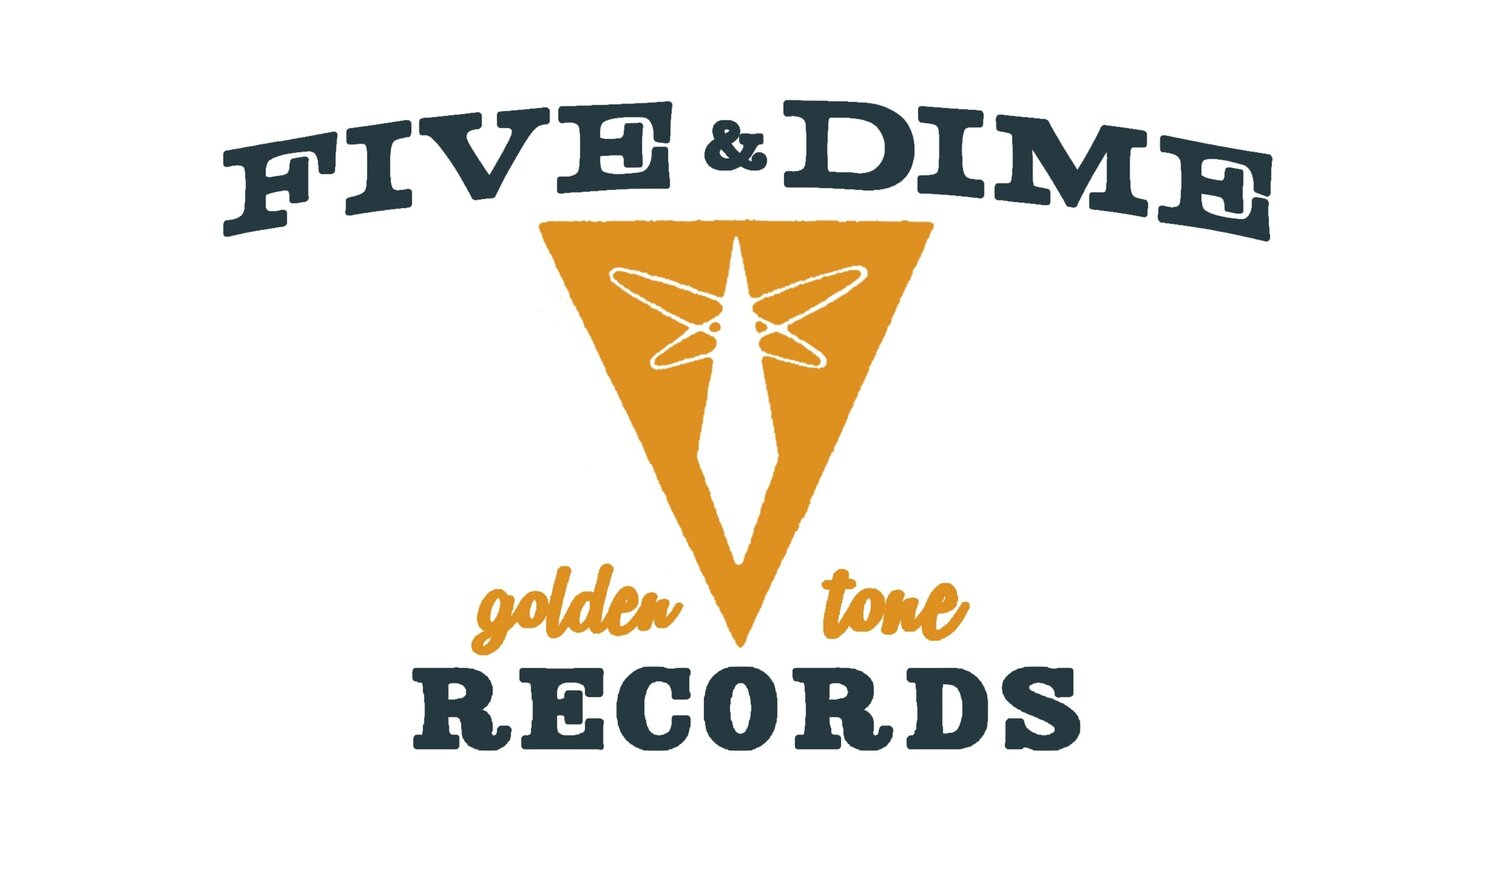 Five & Dime Records